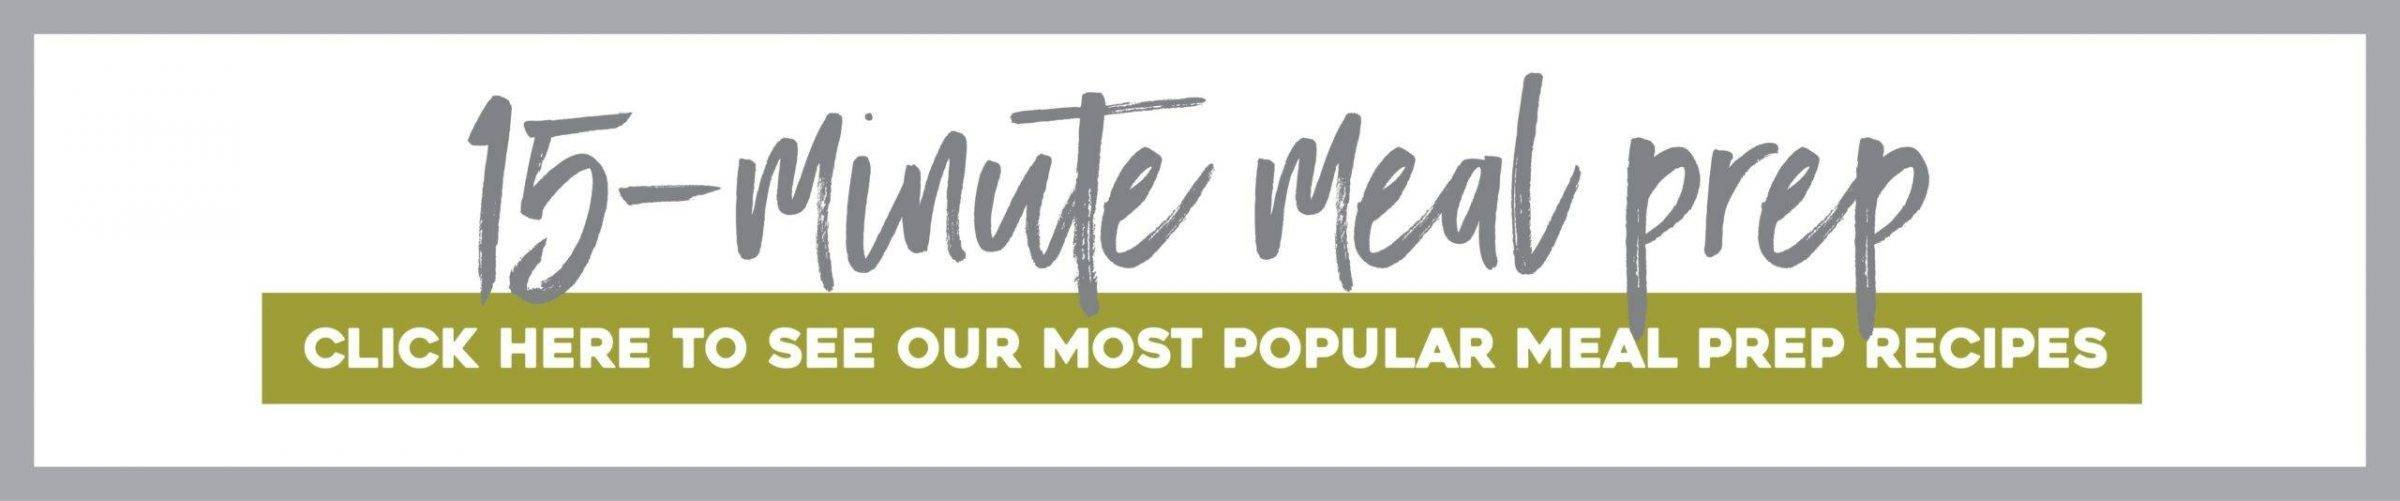 A banner advertising 15 Minute Meal Prep.